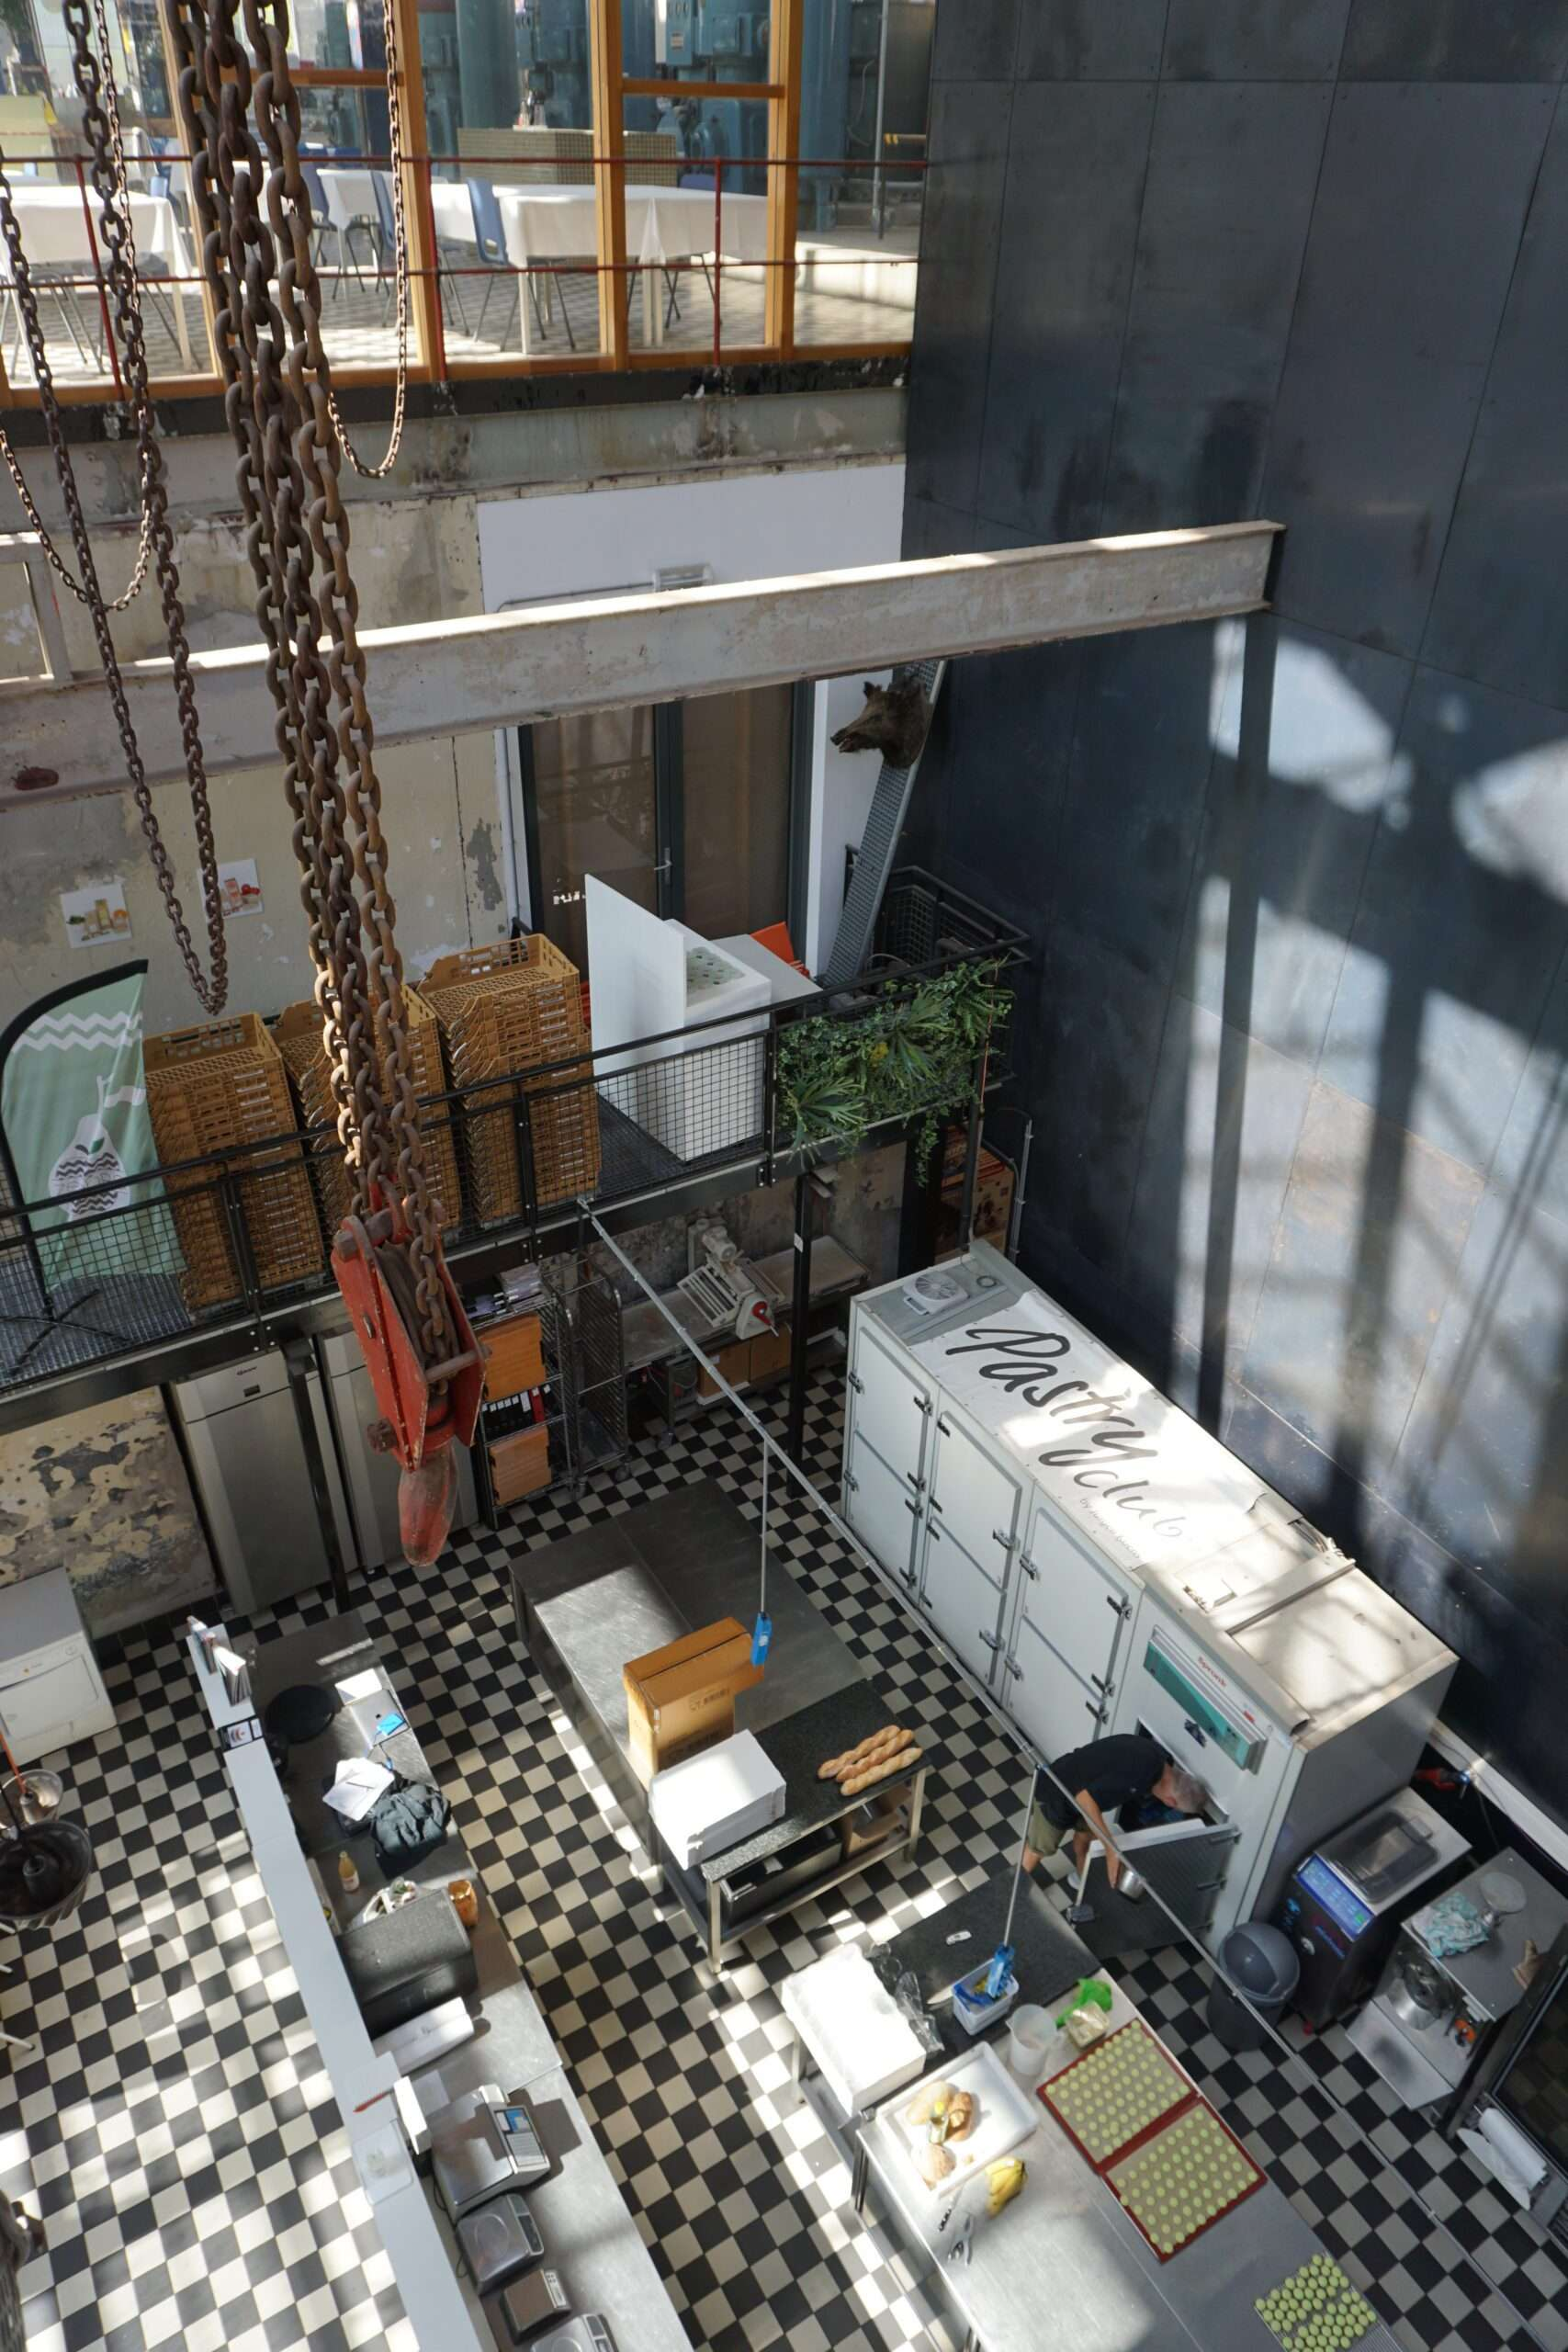 inside Pastry Club in Eindhoven, an industrial building with a pastry shop inside, with black and white tiled floor